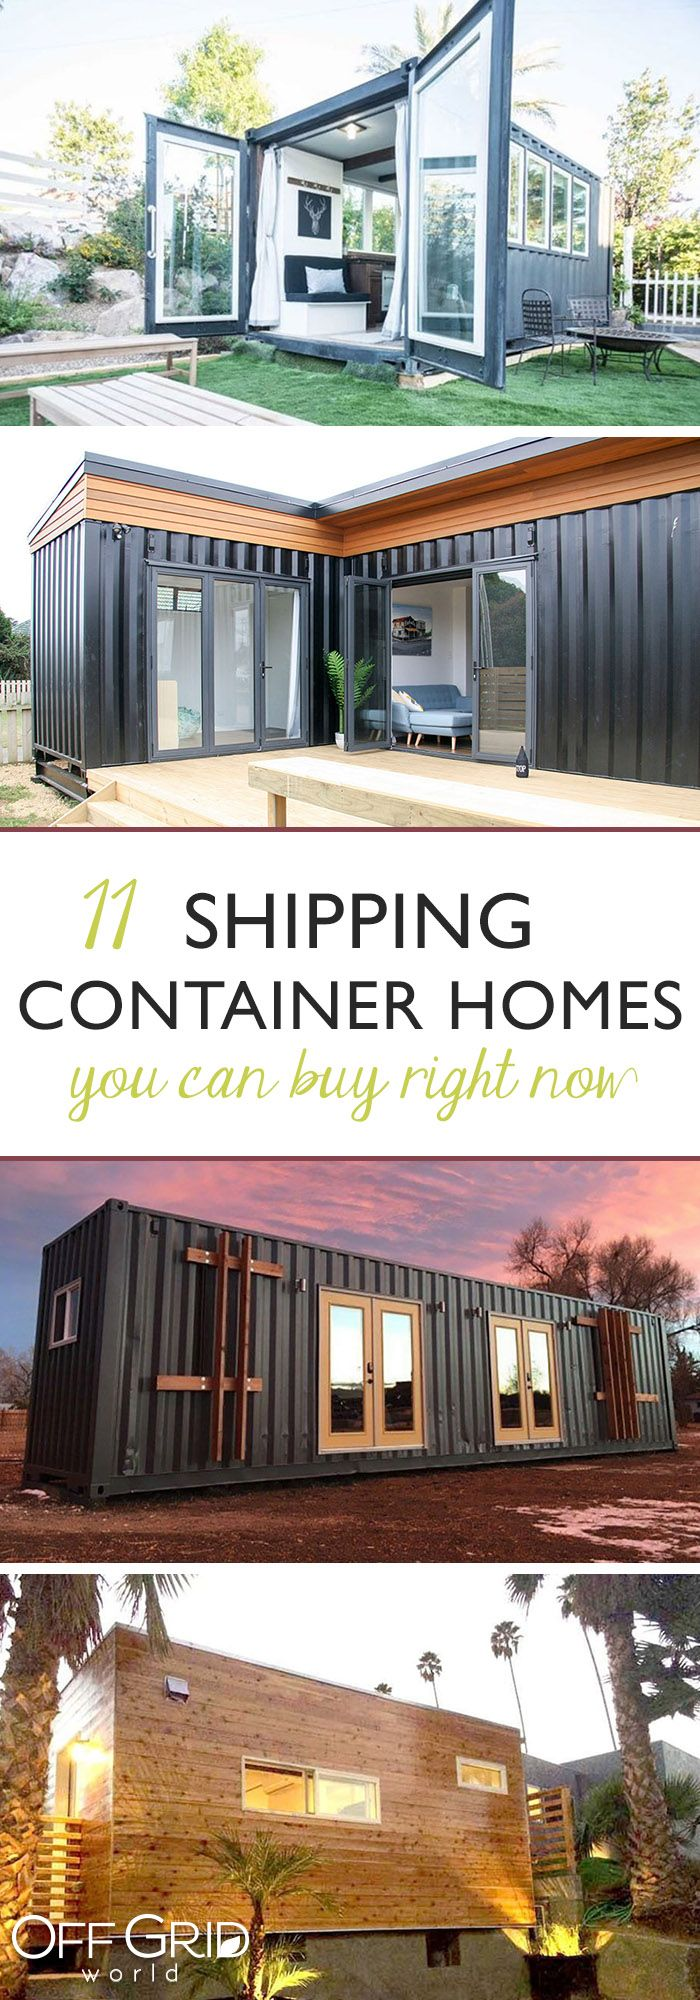 11 Shipping Container Homes You Can Buy Right Now Shipping Container Homes Container House Container House Plans